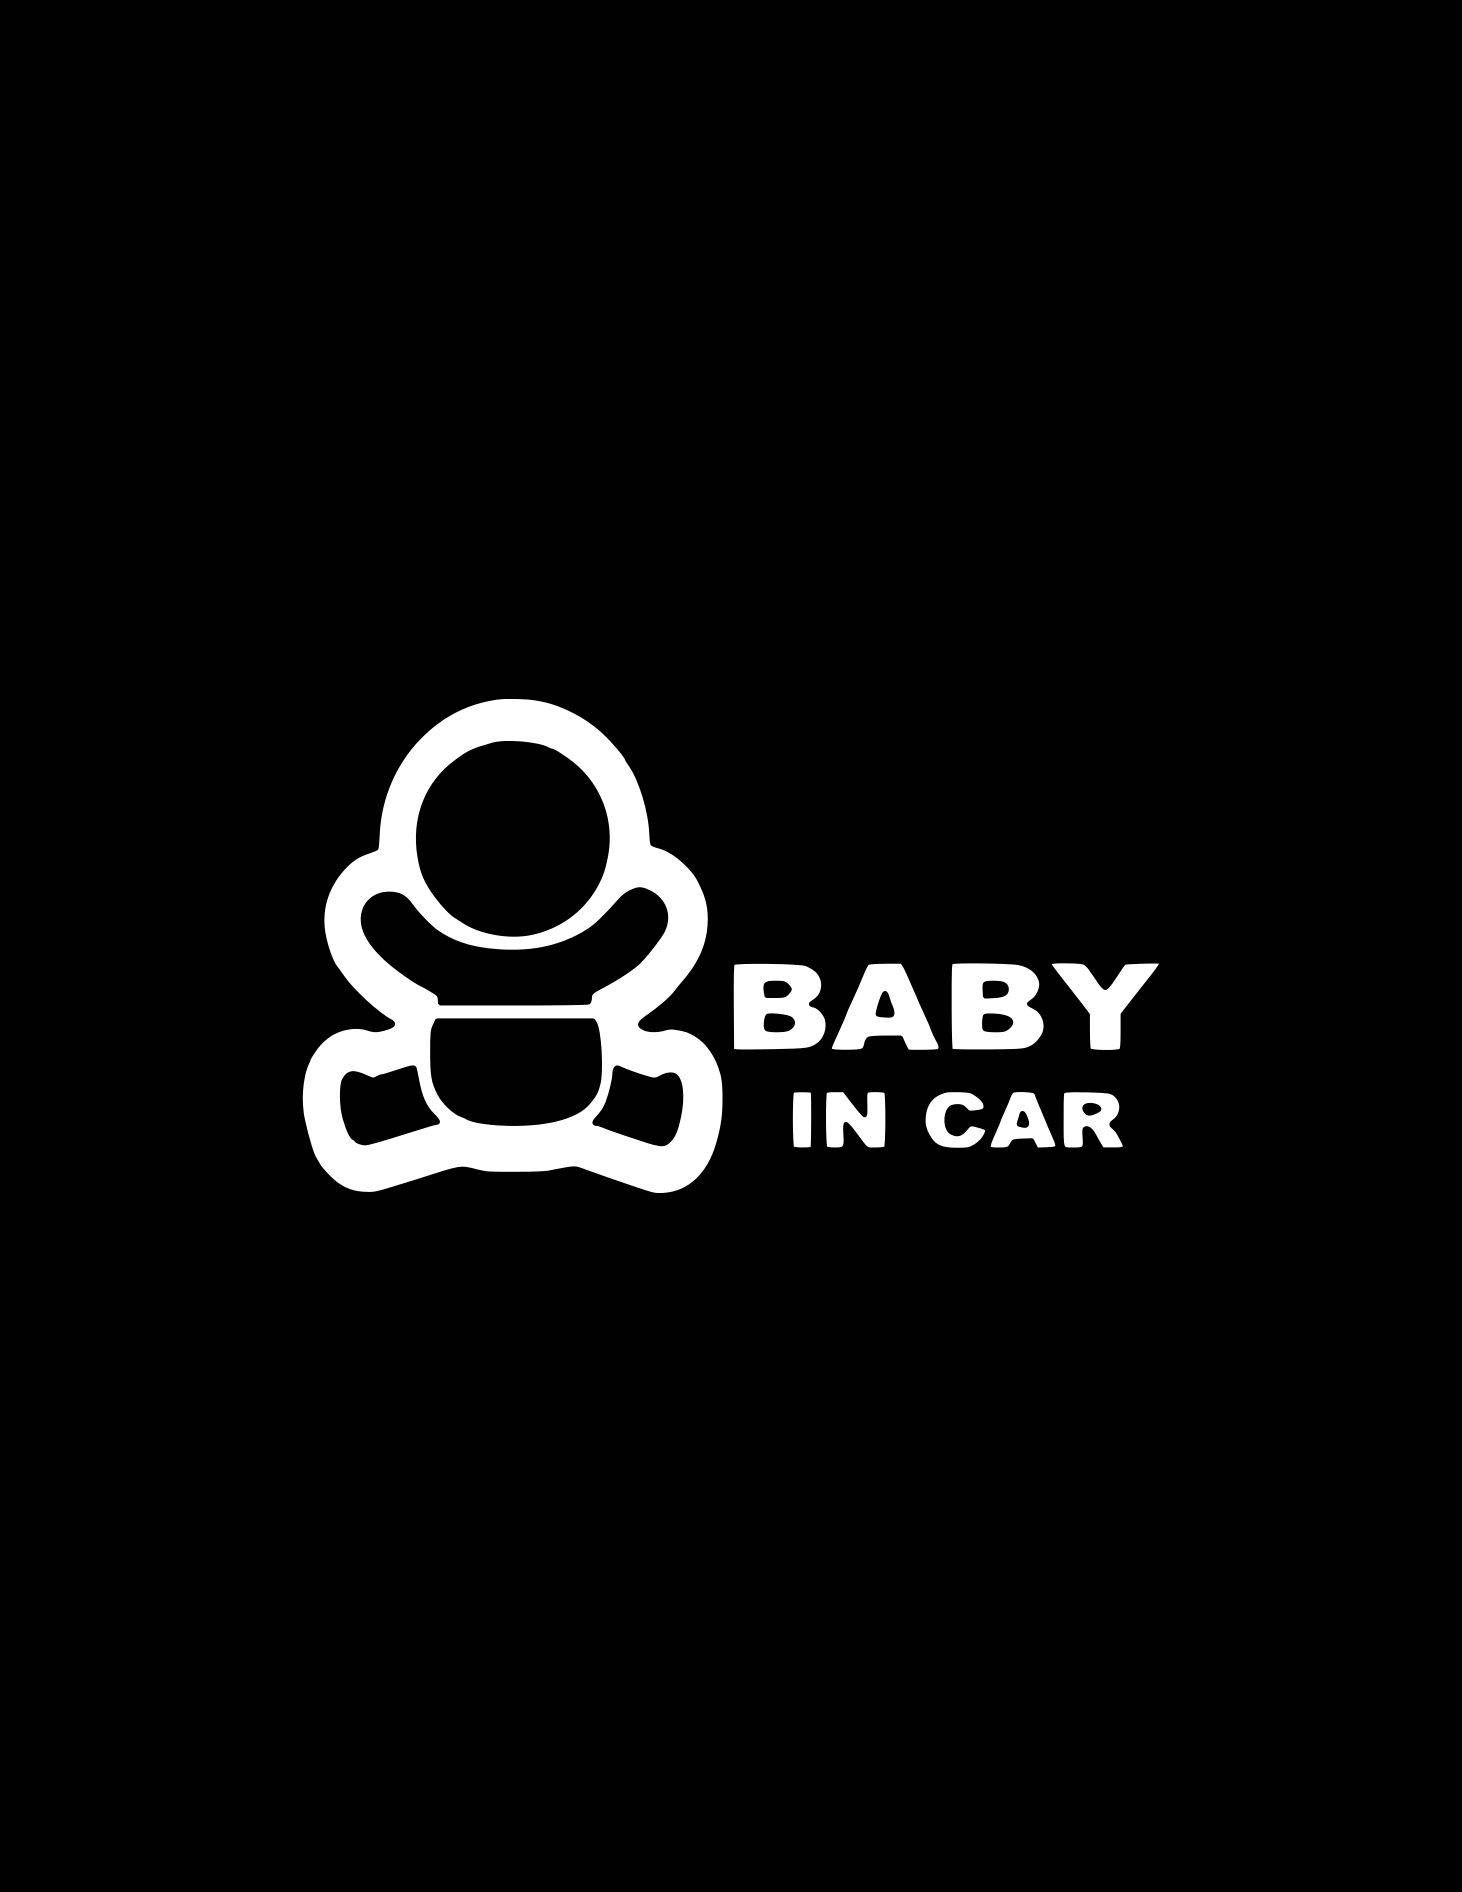 Baby On Board Decal Baby In Car Decal Baby On Board Car Decal Baby In Car Baby On Board Sticker Cute Baby On Board Car Decals Digital Word Art Window Decals [ 1892 x 1462 Pixel ]